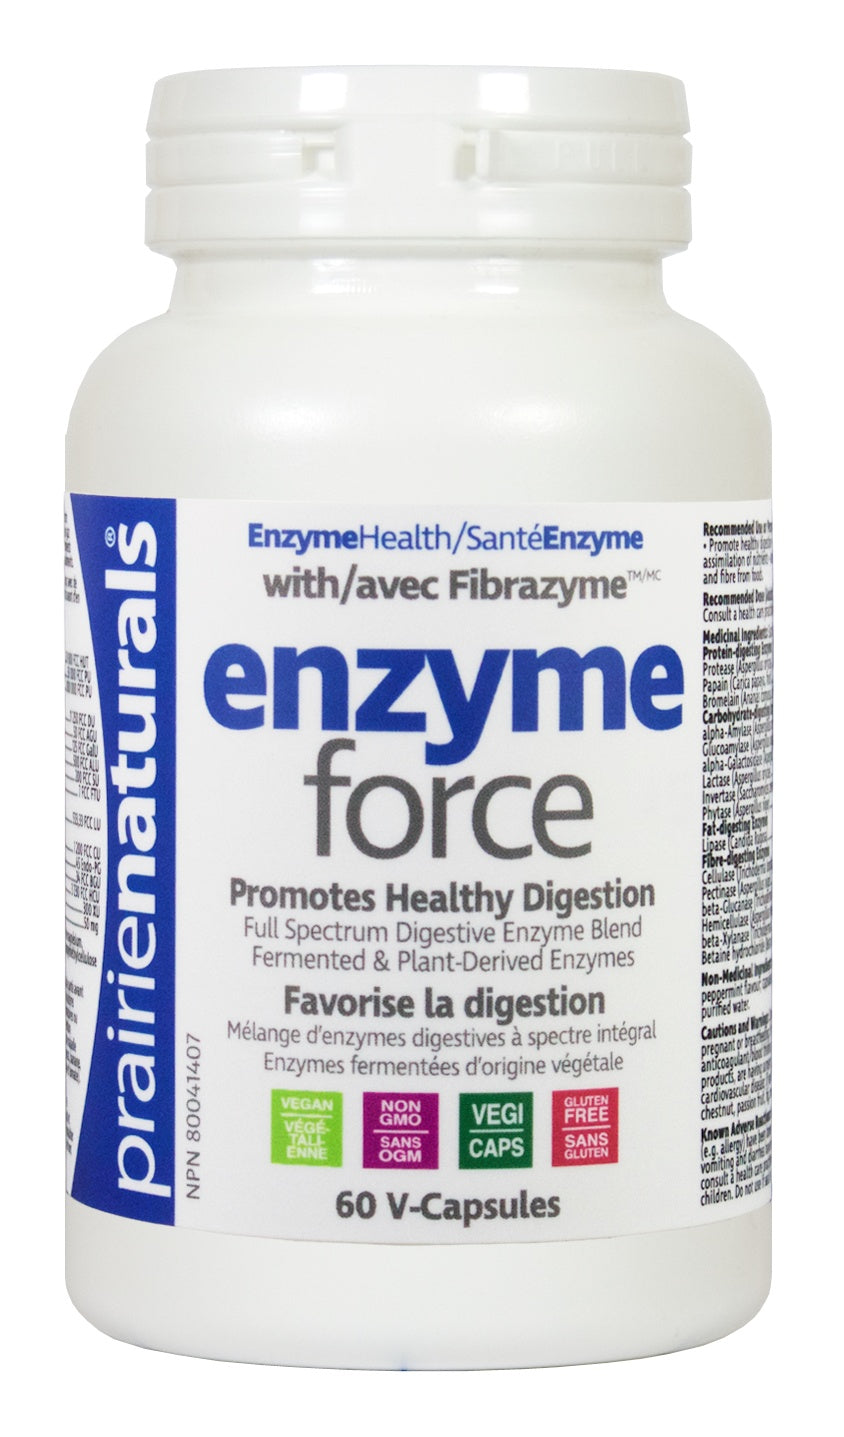 Supplements & Vitamins - Prairie Naturals - Enzyme-Force With FibraZyme™, 60 Caps